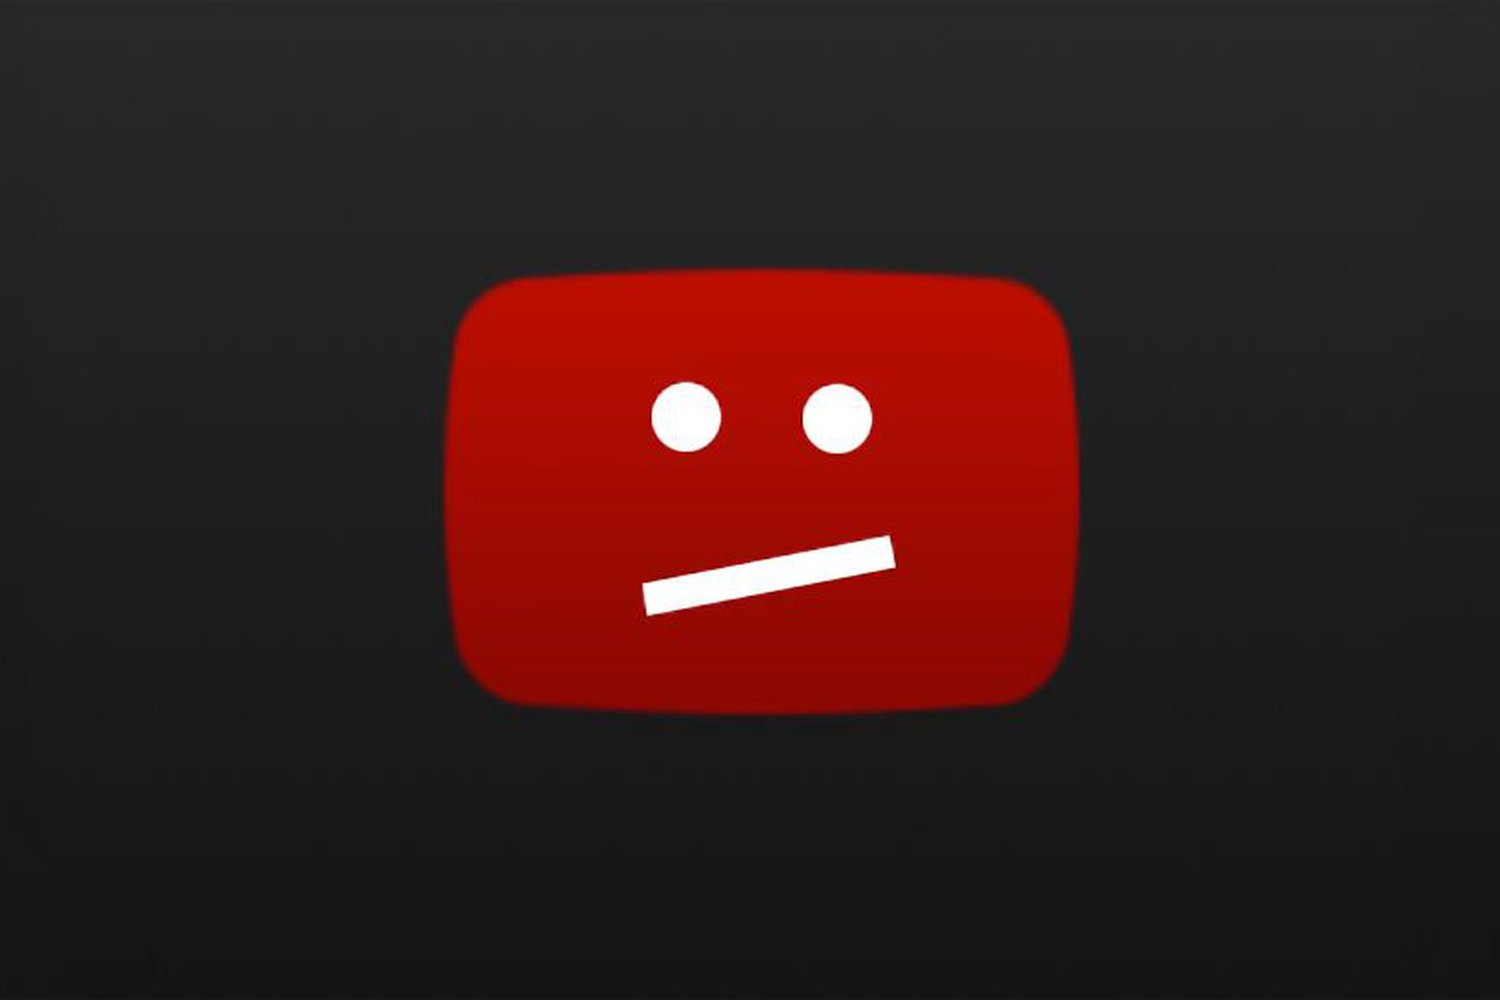 YouTube joins the fight against objectionable media - News Front channels removed without explanation